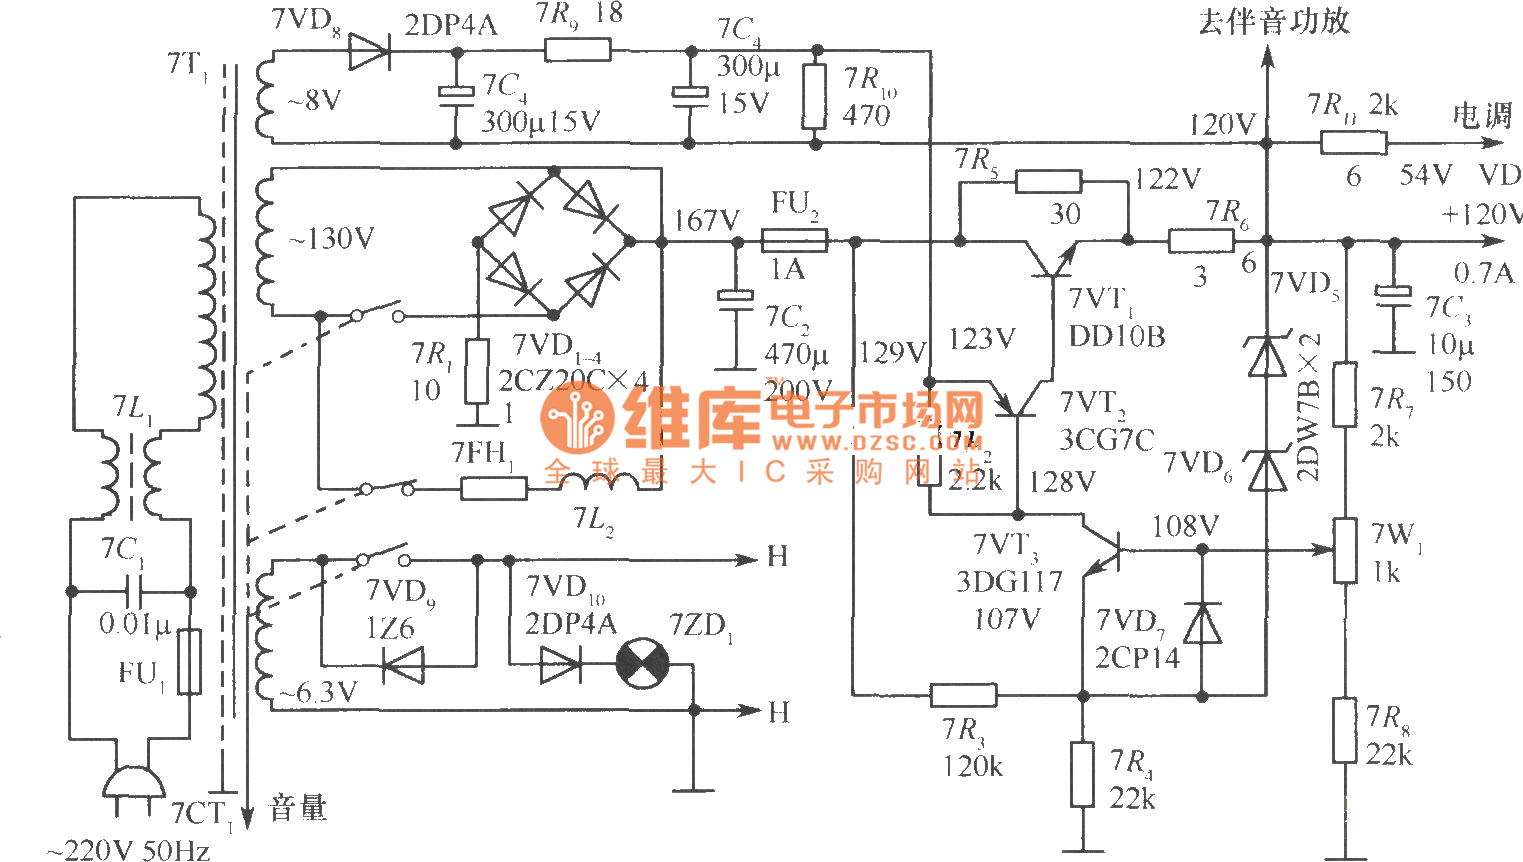 120v regulated voltage power supply circuit - power_supply ... 120v led wiring diagram 12v to 120v transformer wiring diagram